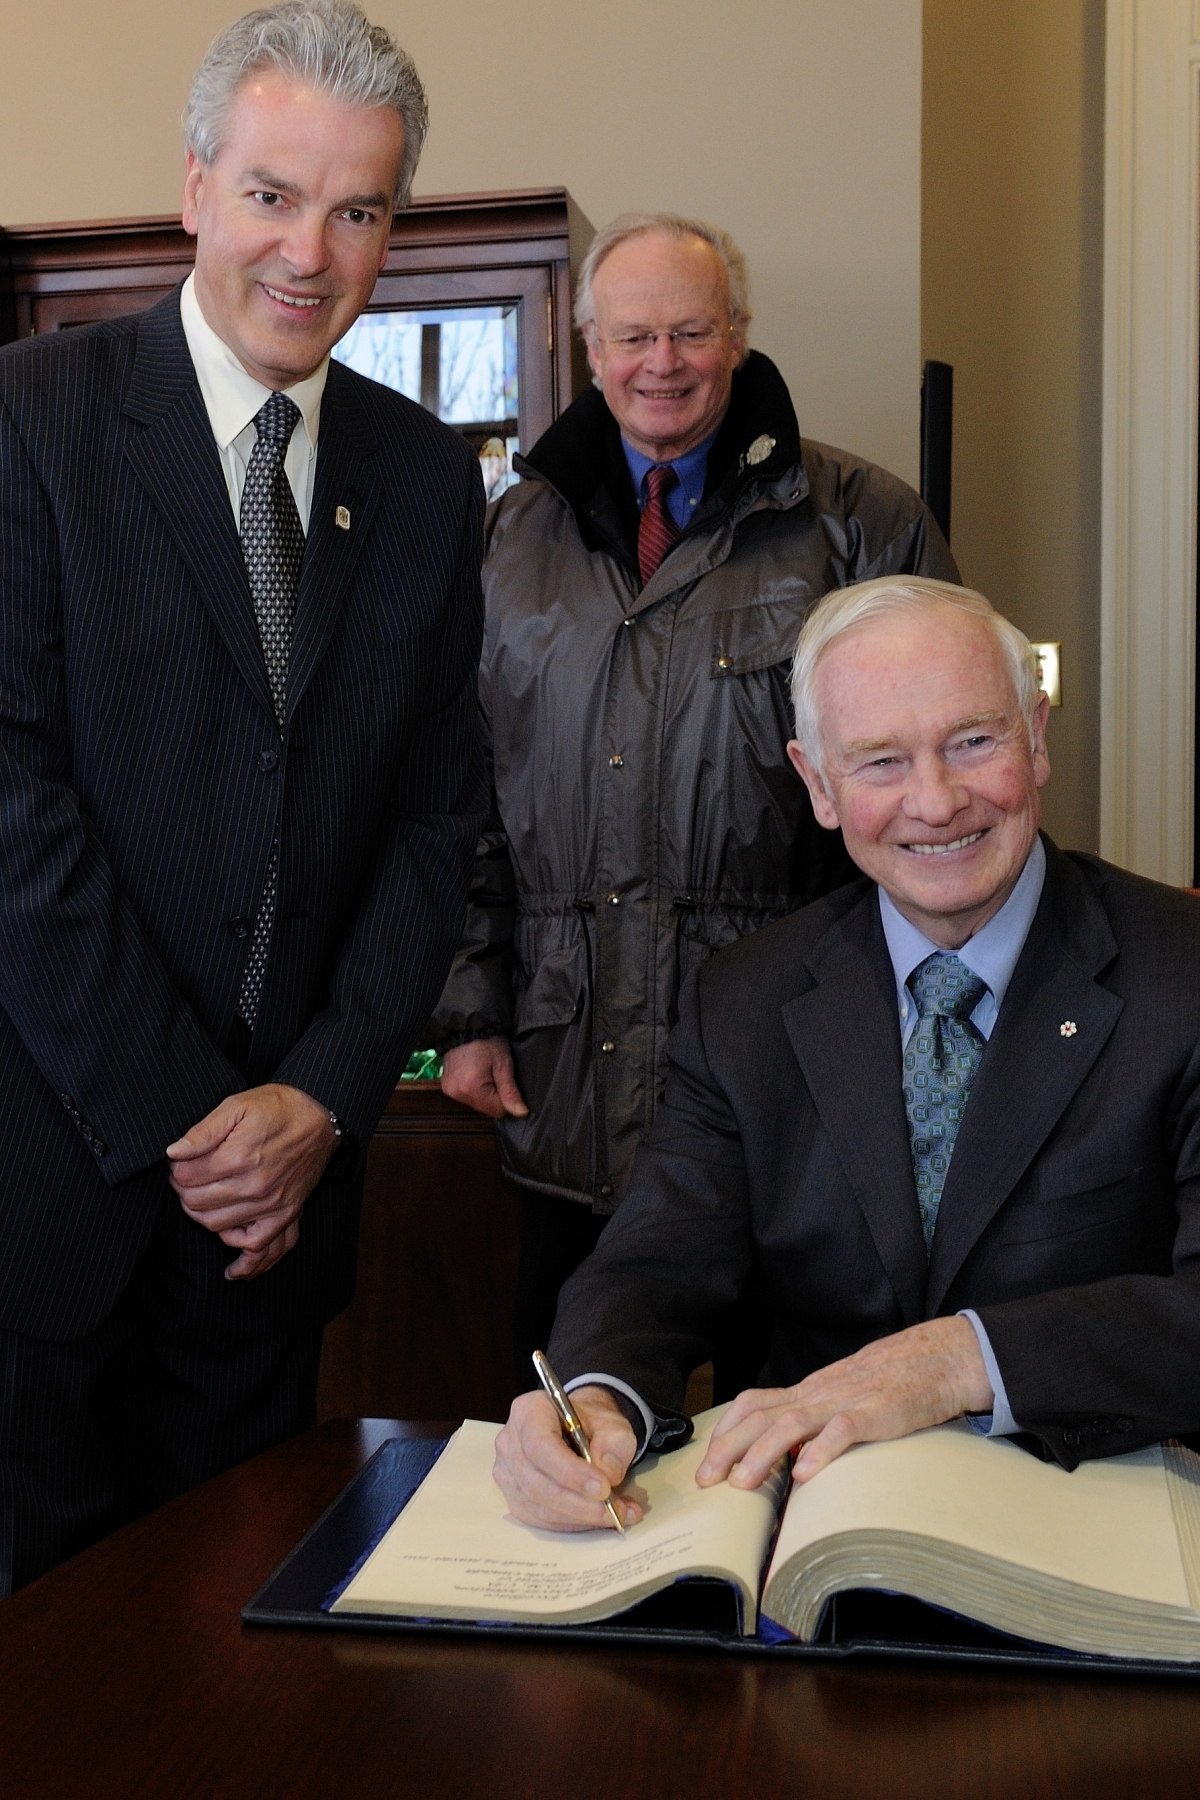 During his visit to City Hall, the Governor General signed the guest book.